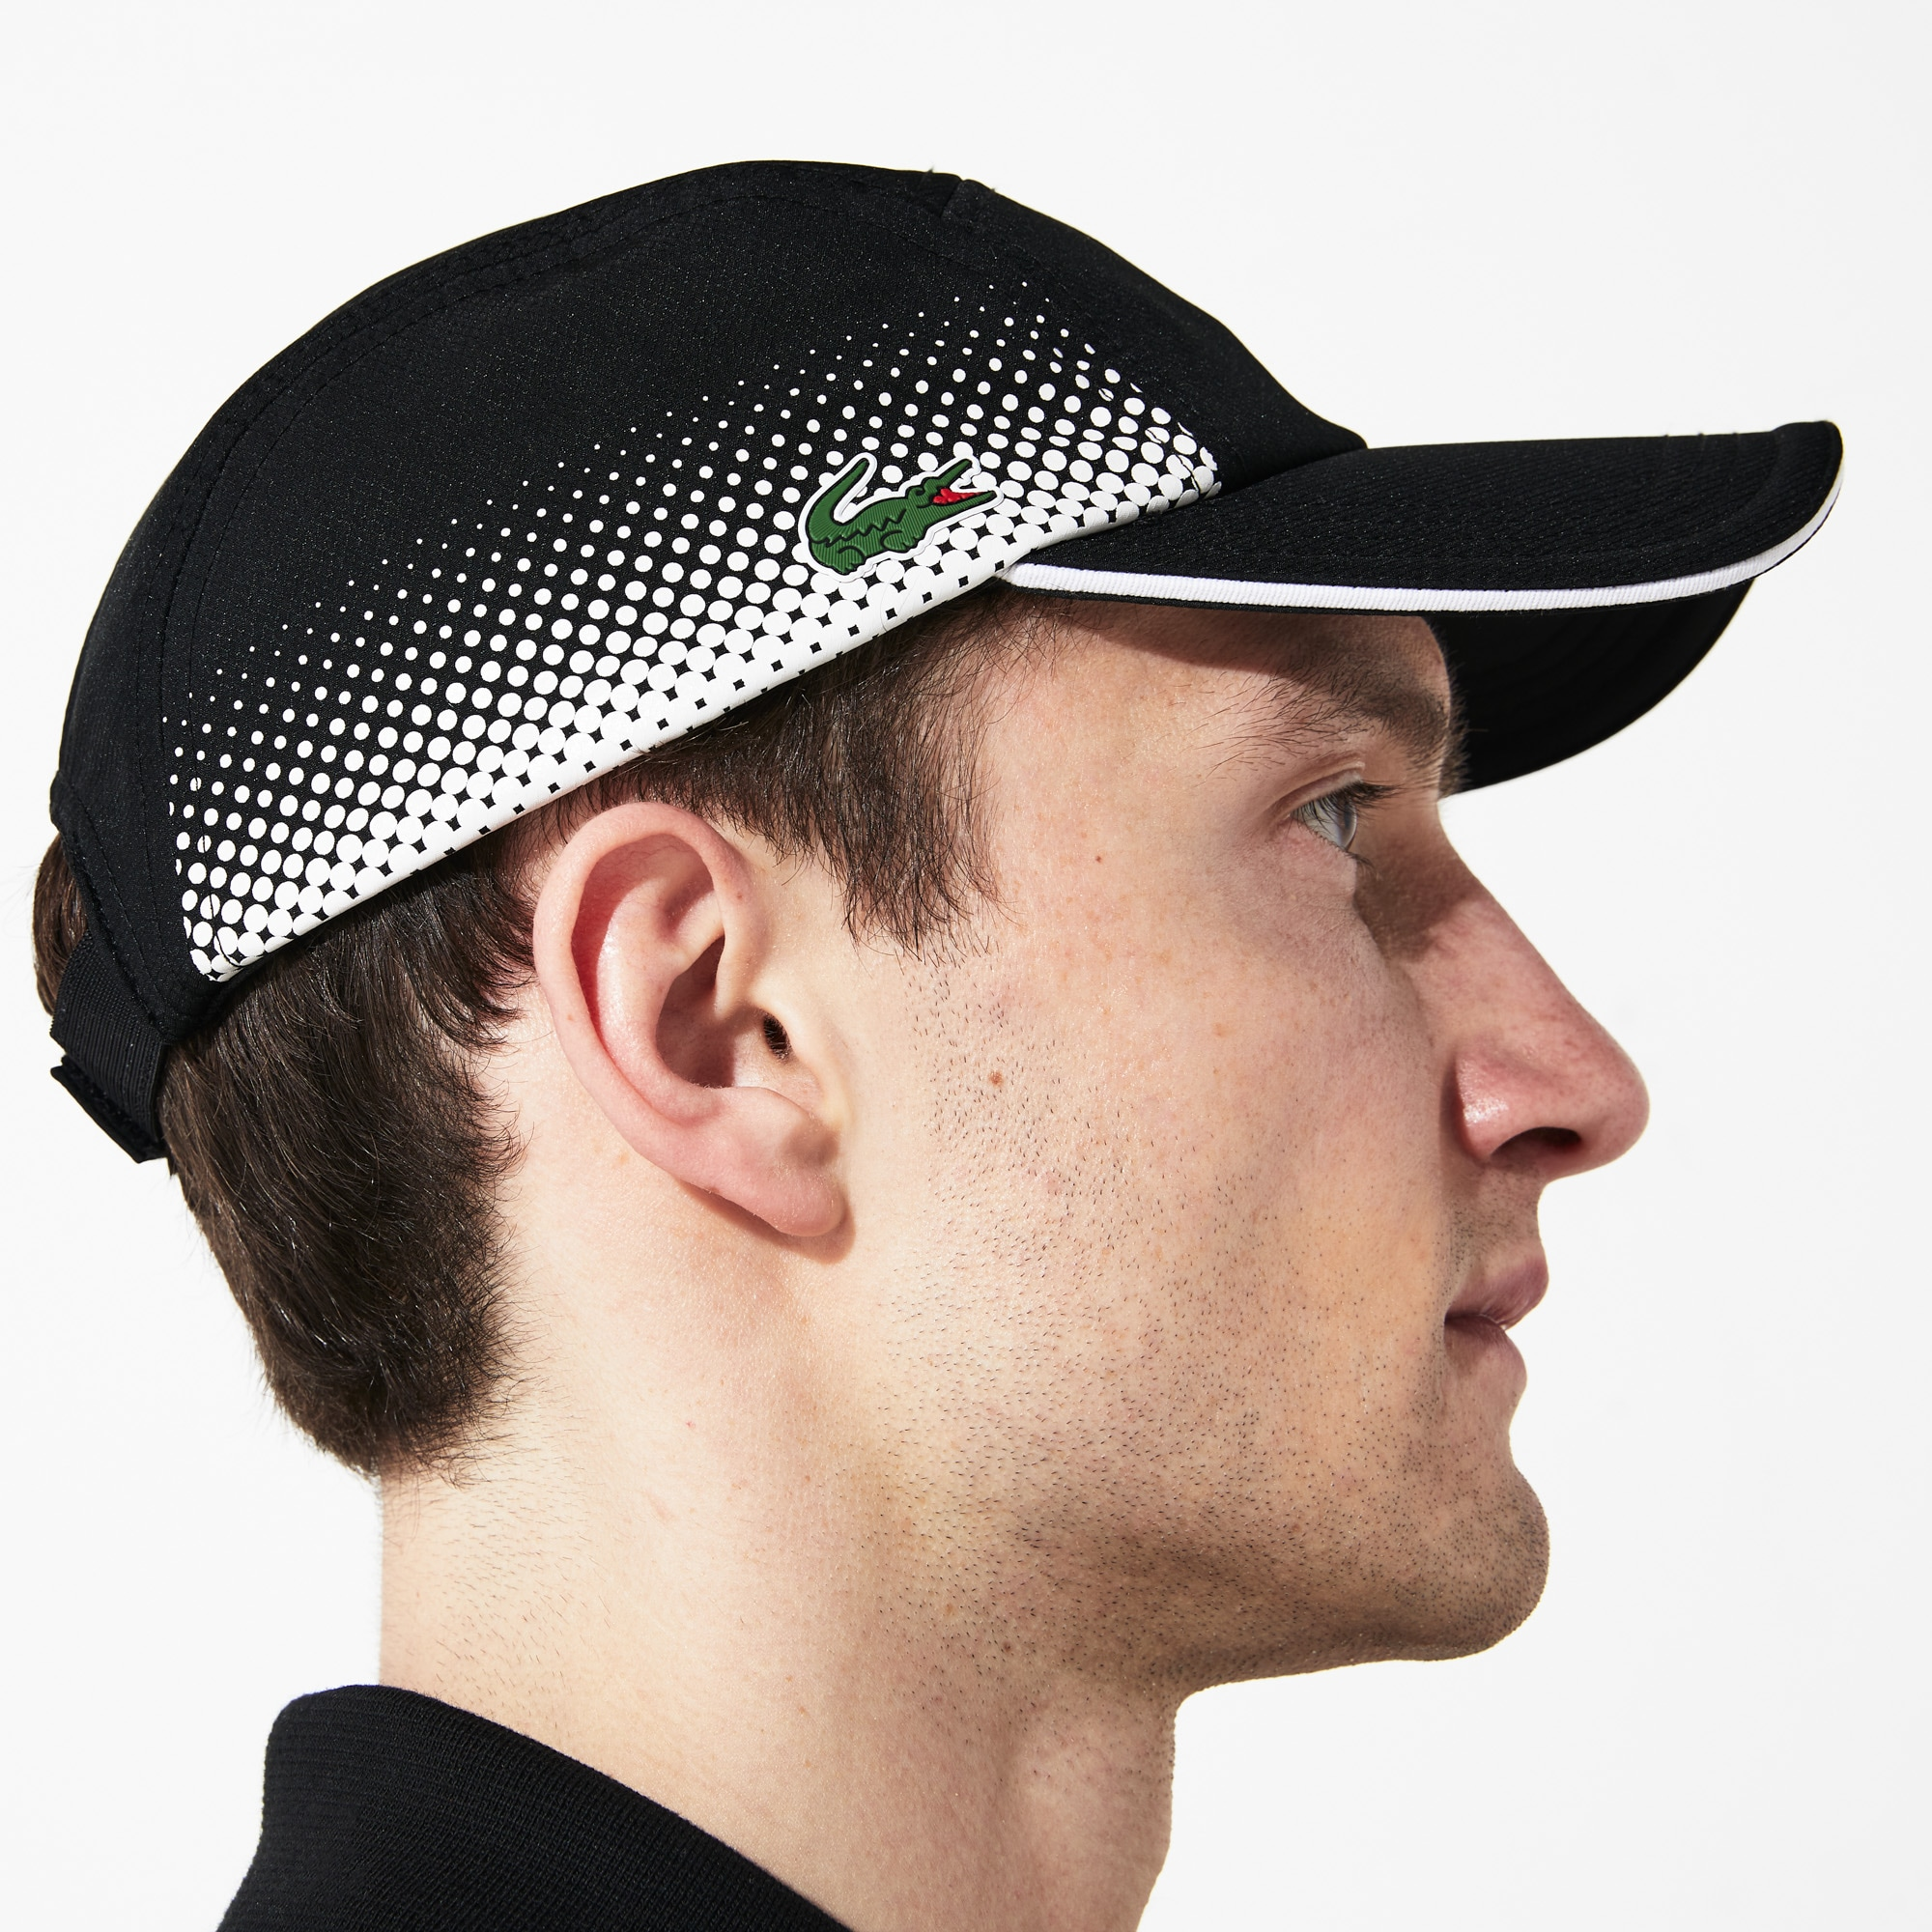 f103c8e2174c72 Caps & Hats | Men's Accessories | LACOSTE